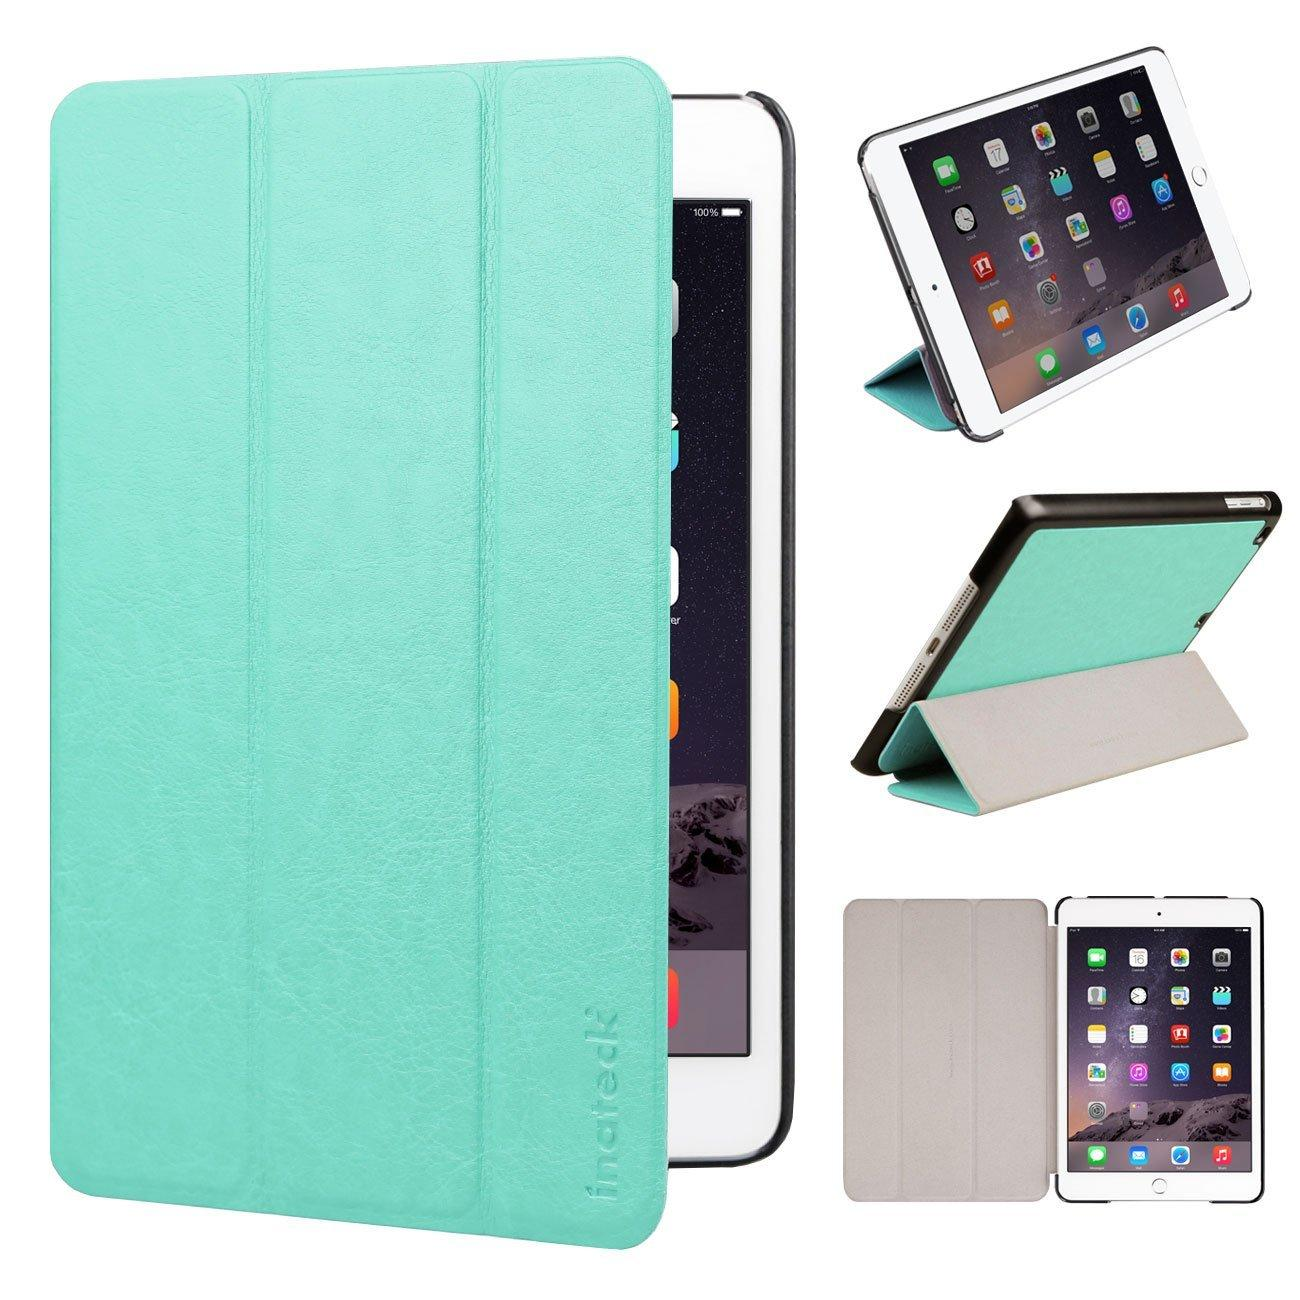 Inateck iPad Mini Case - Ultra Slim Leather Case Smart Cover with Magnetic Auto Sleep Wake-up Function